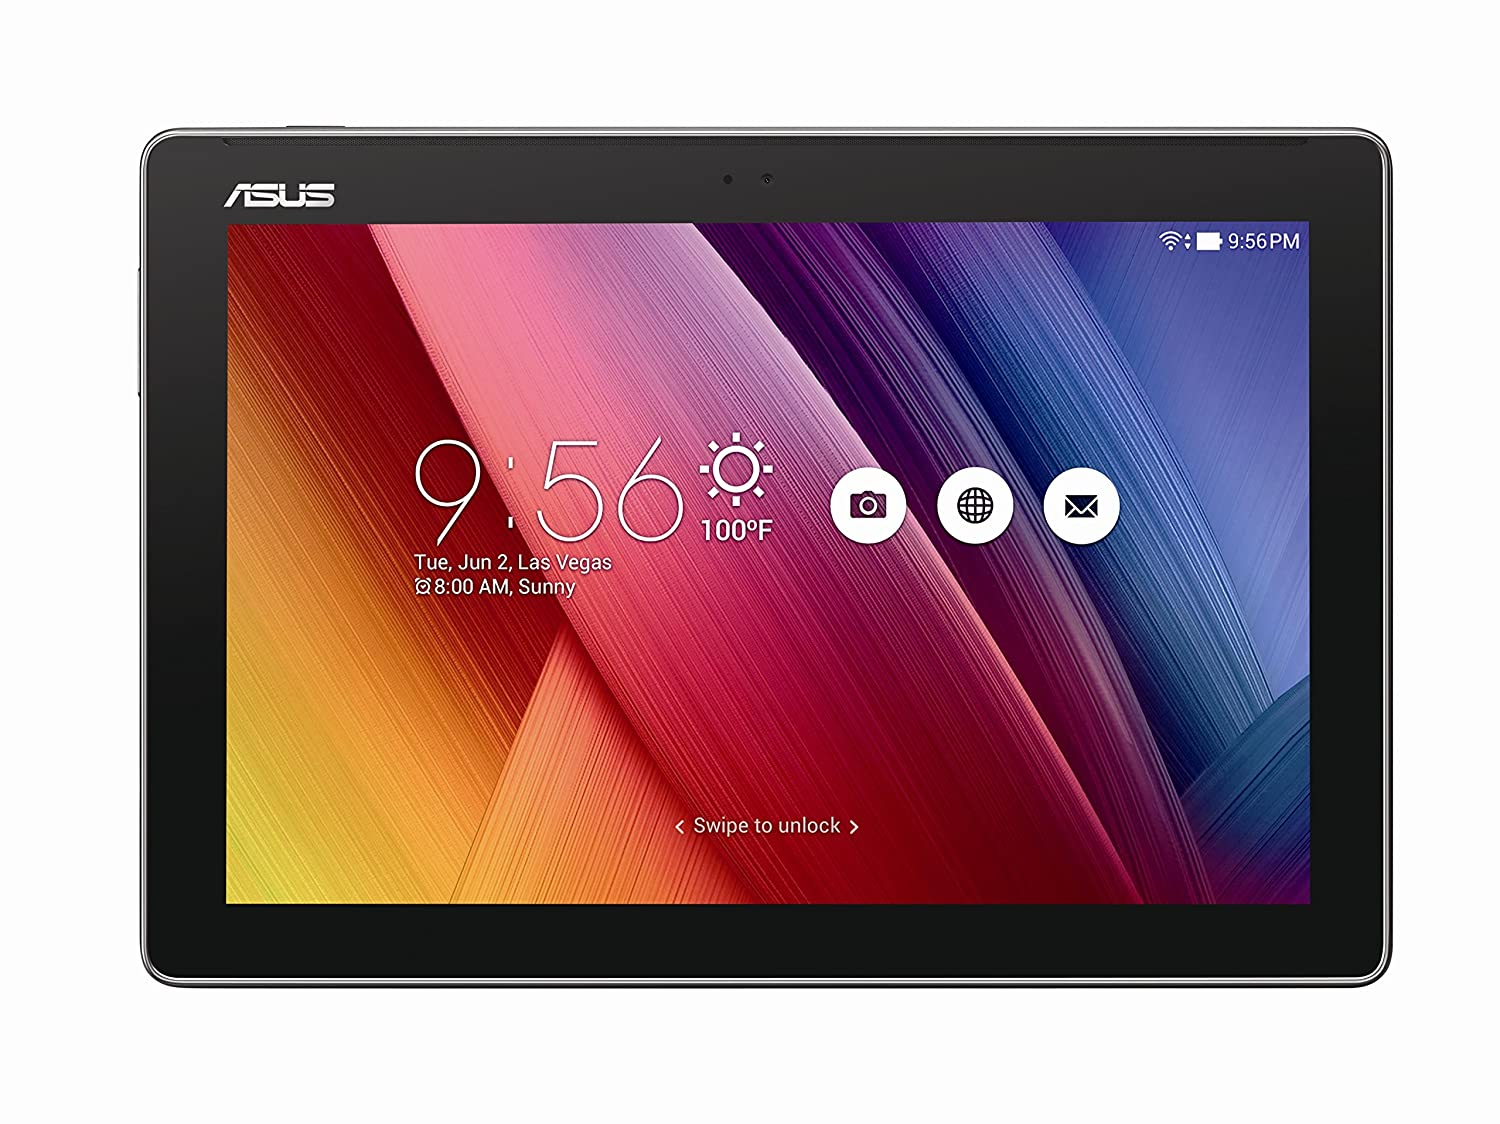 ASUS ZenPad 10: A well-balanced Gaming Tablet